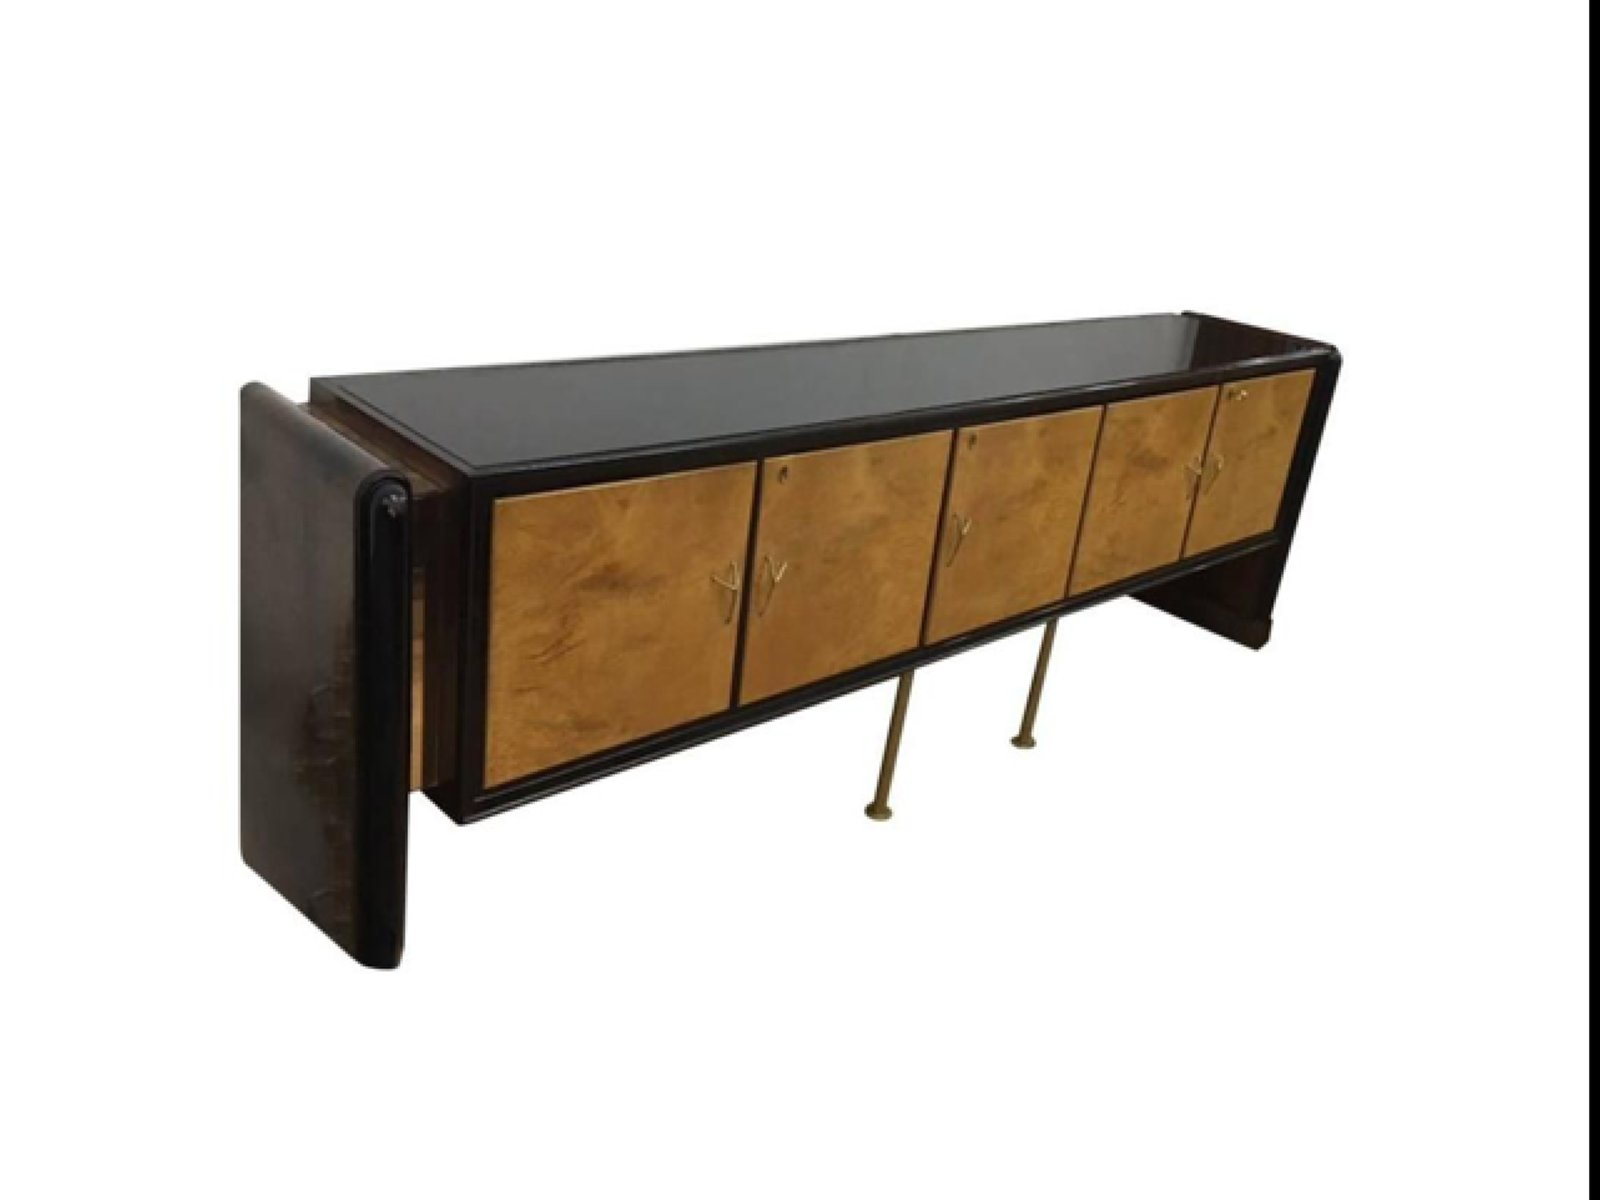 italienisches art deco sideboard 1920er bei pamono kaufen. Black Bedroom Furniture Sets. Home Design Ideas